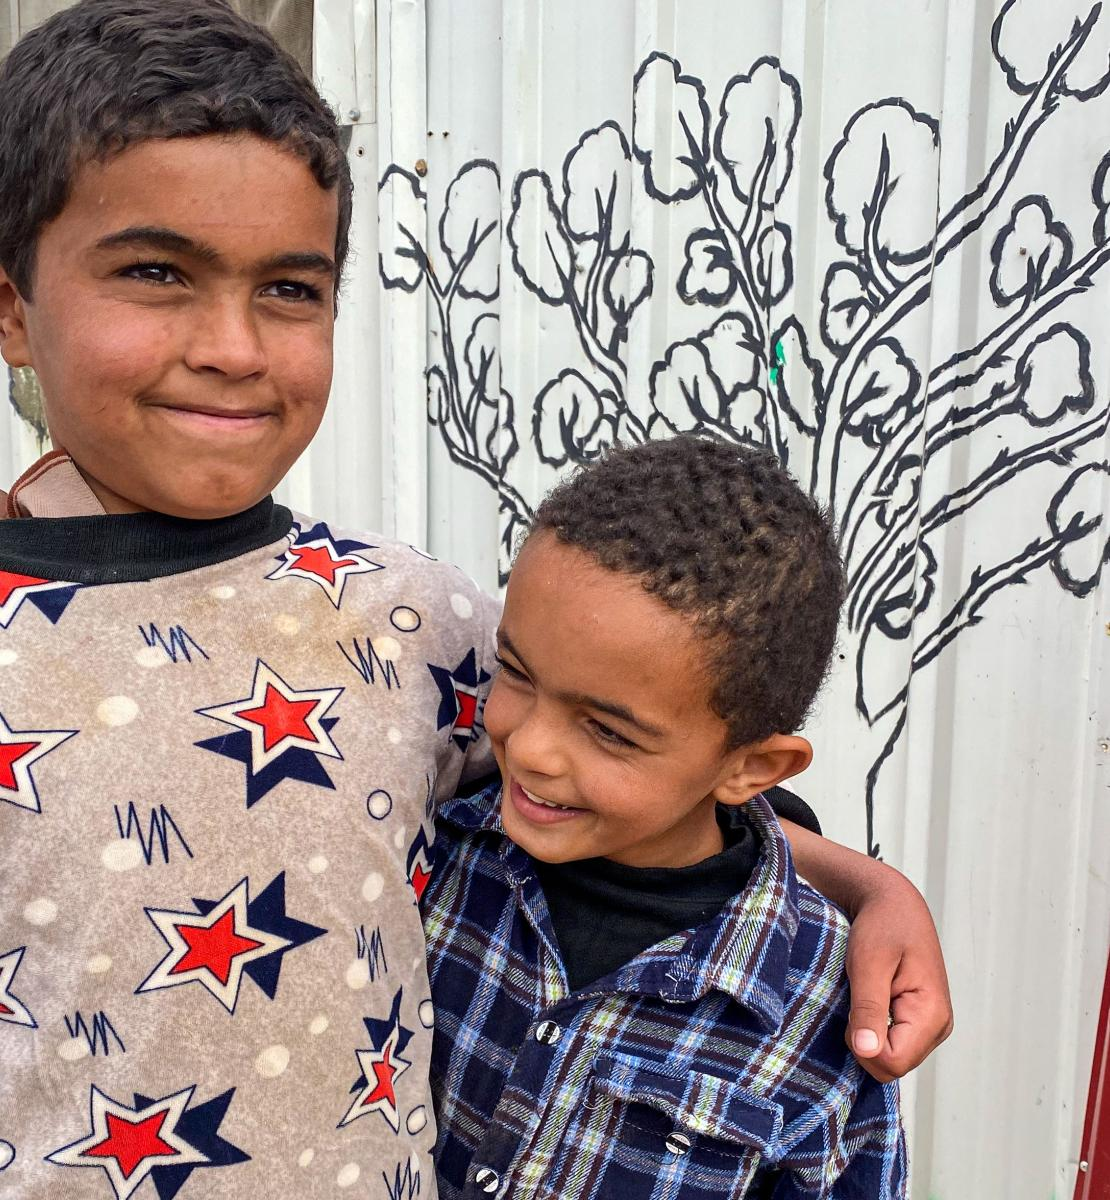 Two small boys with arms around each other smile happily as they stand outside by a wall that has a mural painting.